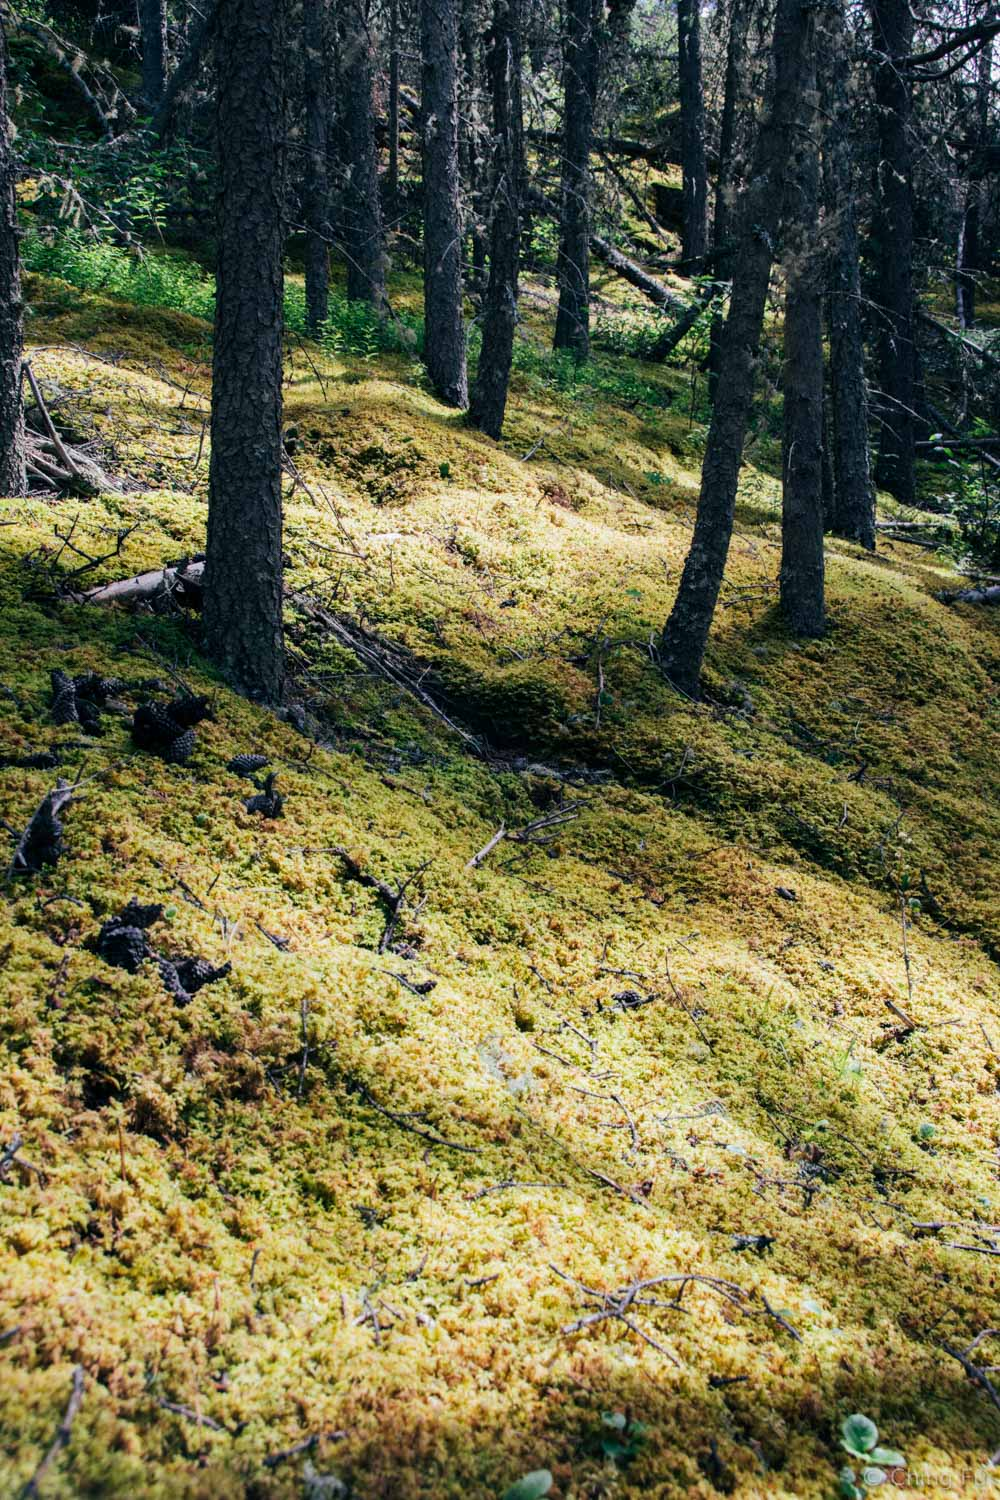 Mossy forest on our M'Clintock hike.